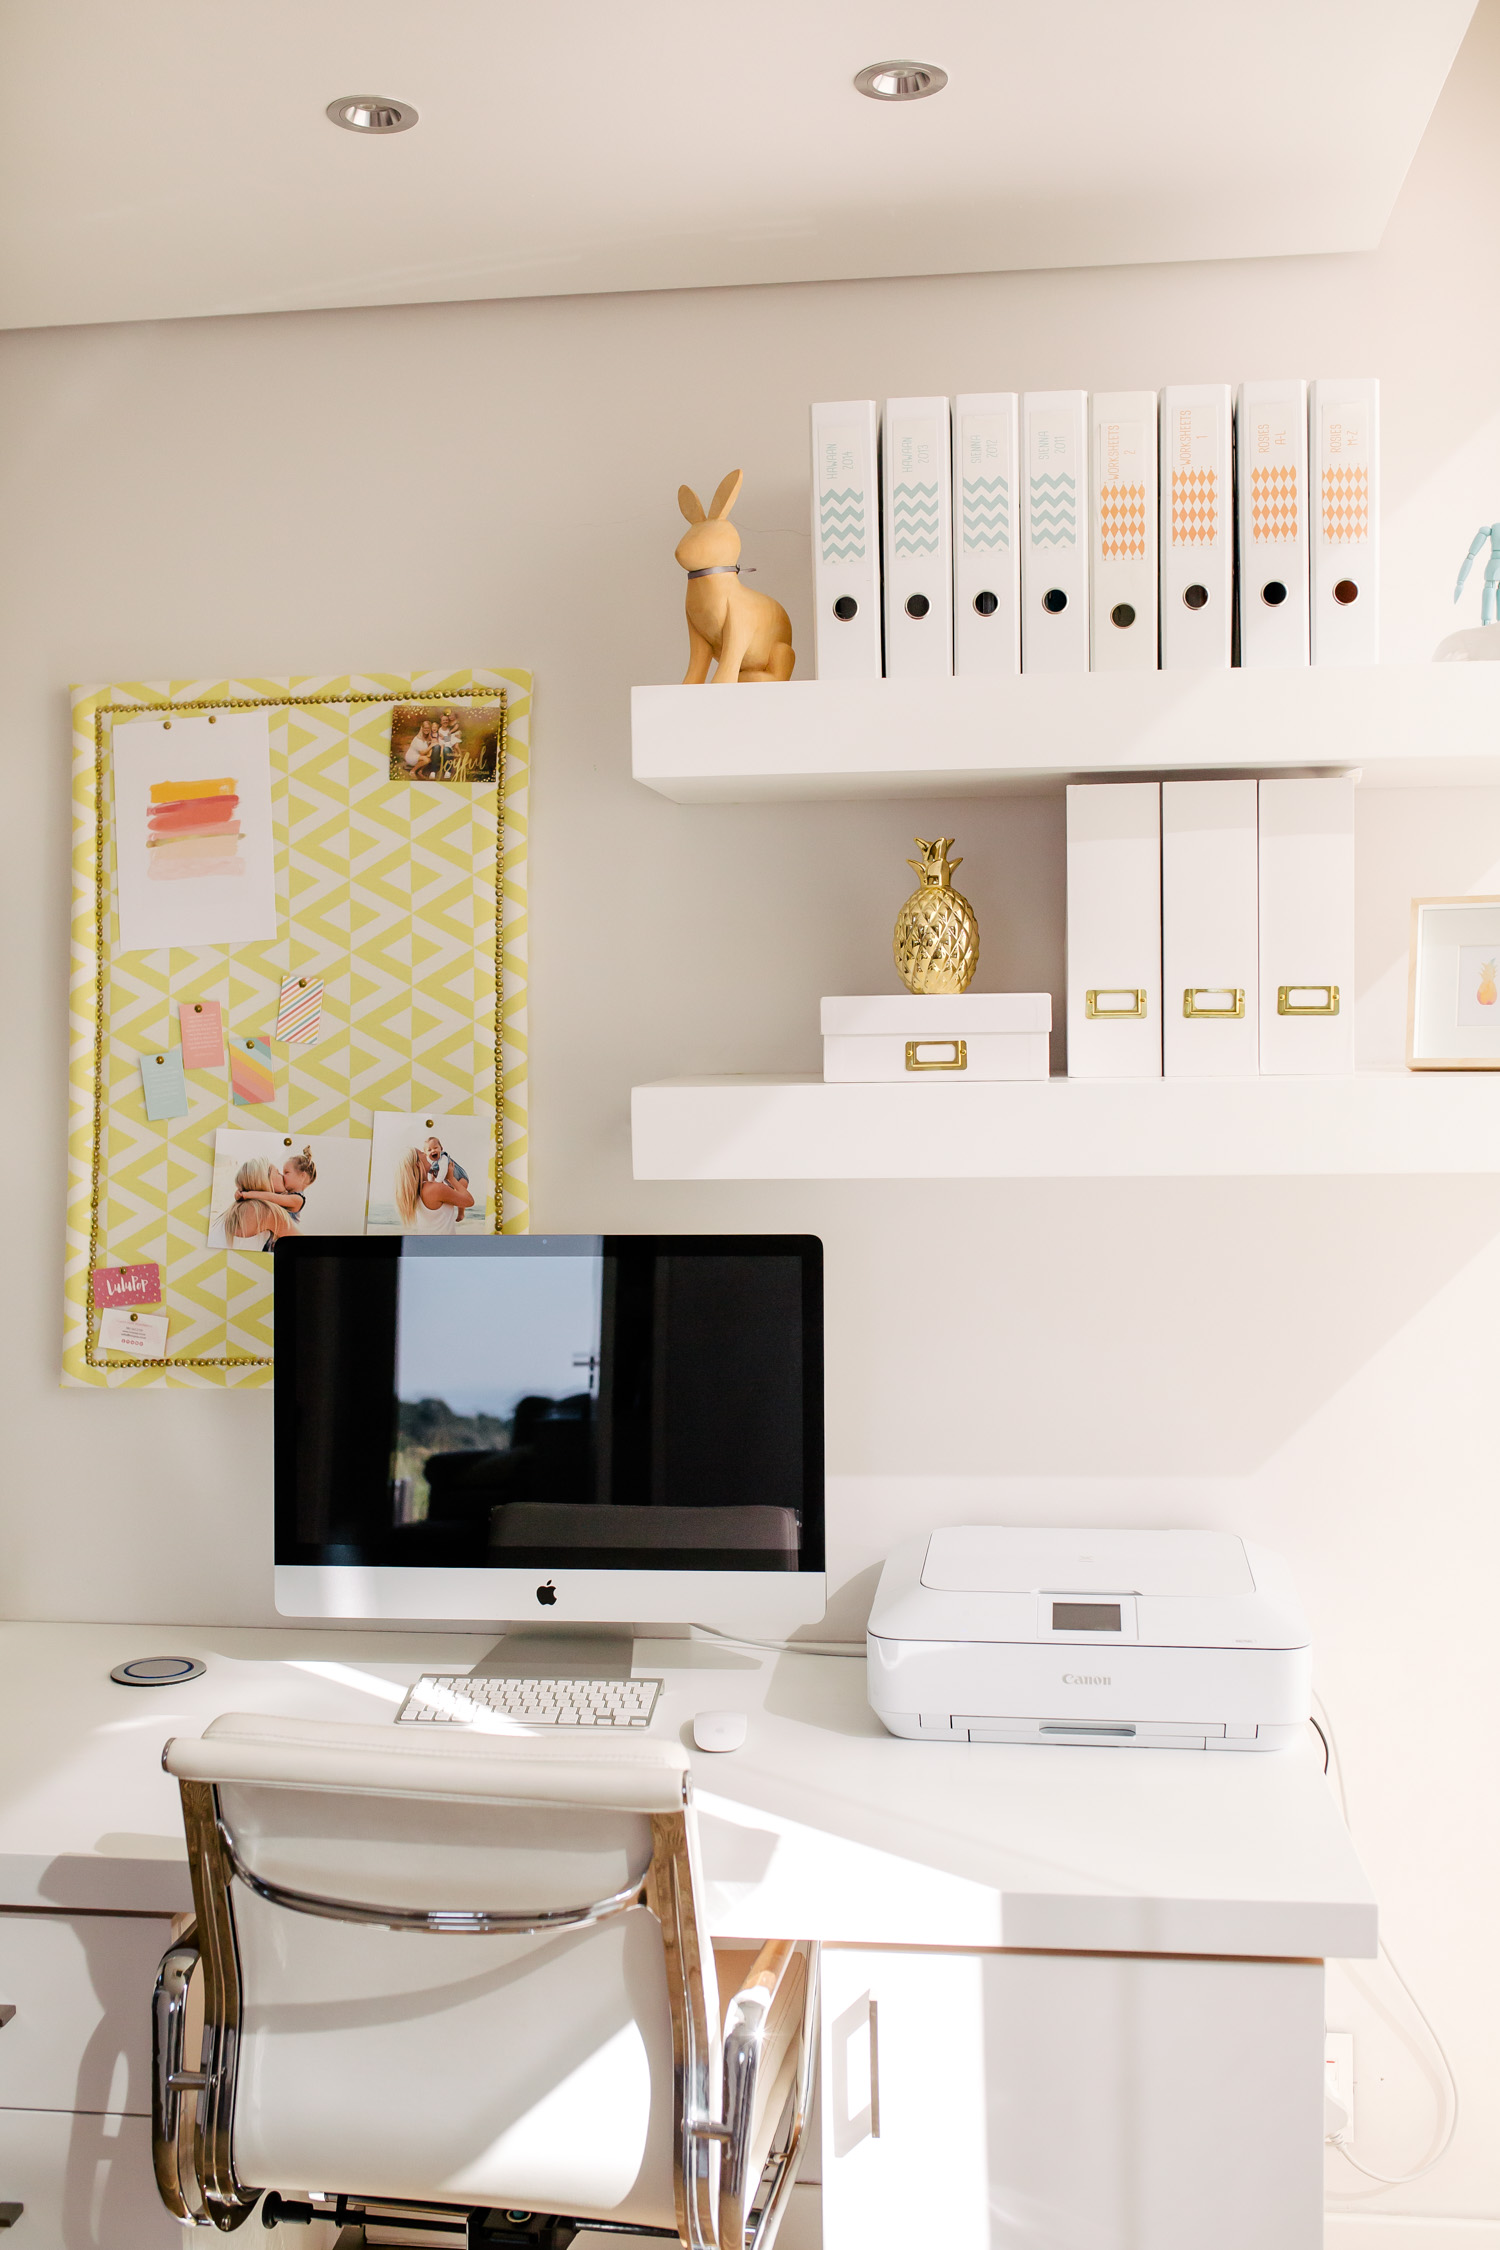 Home Tour: Office Study